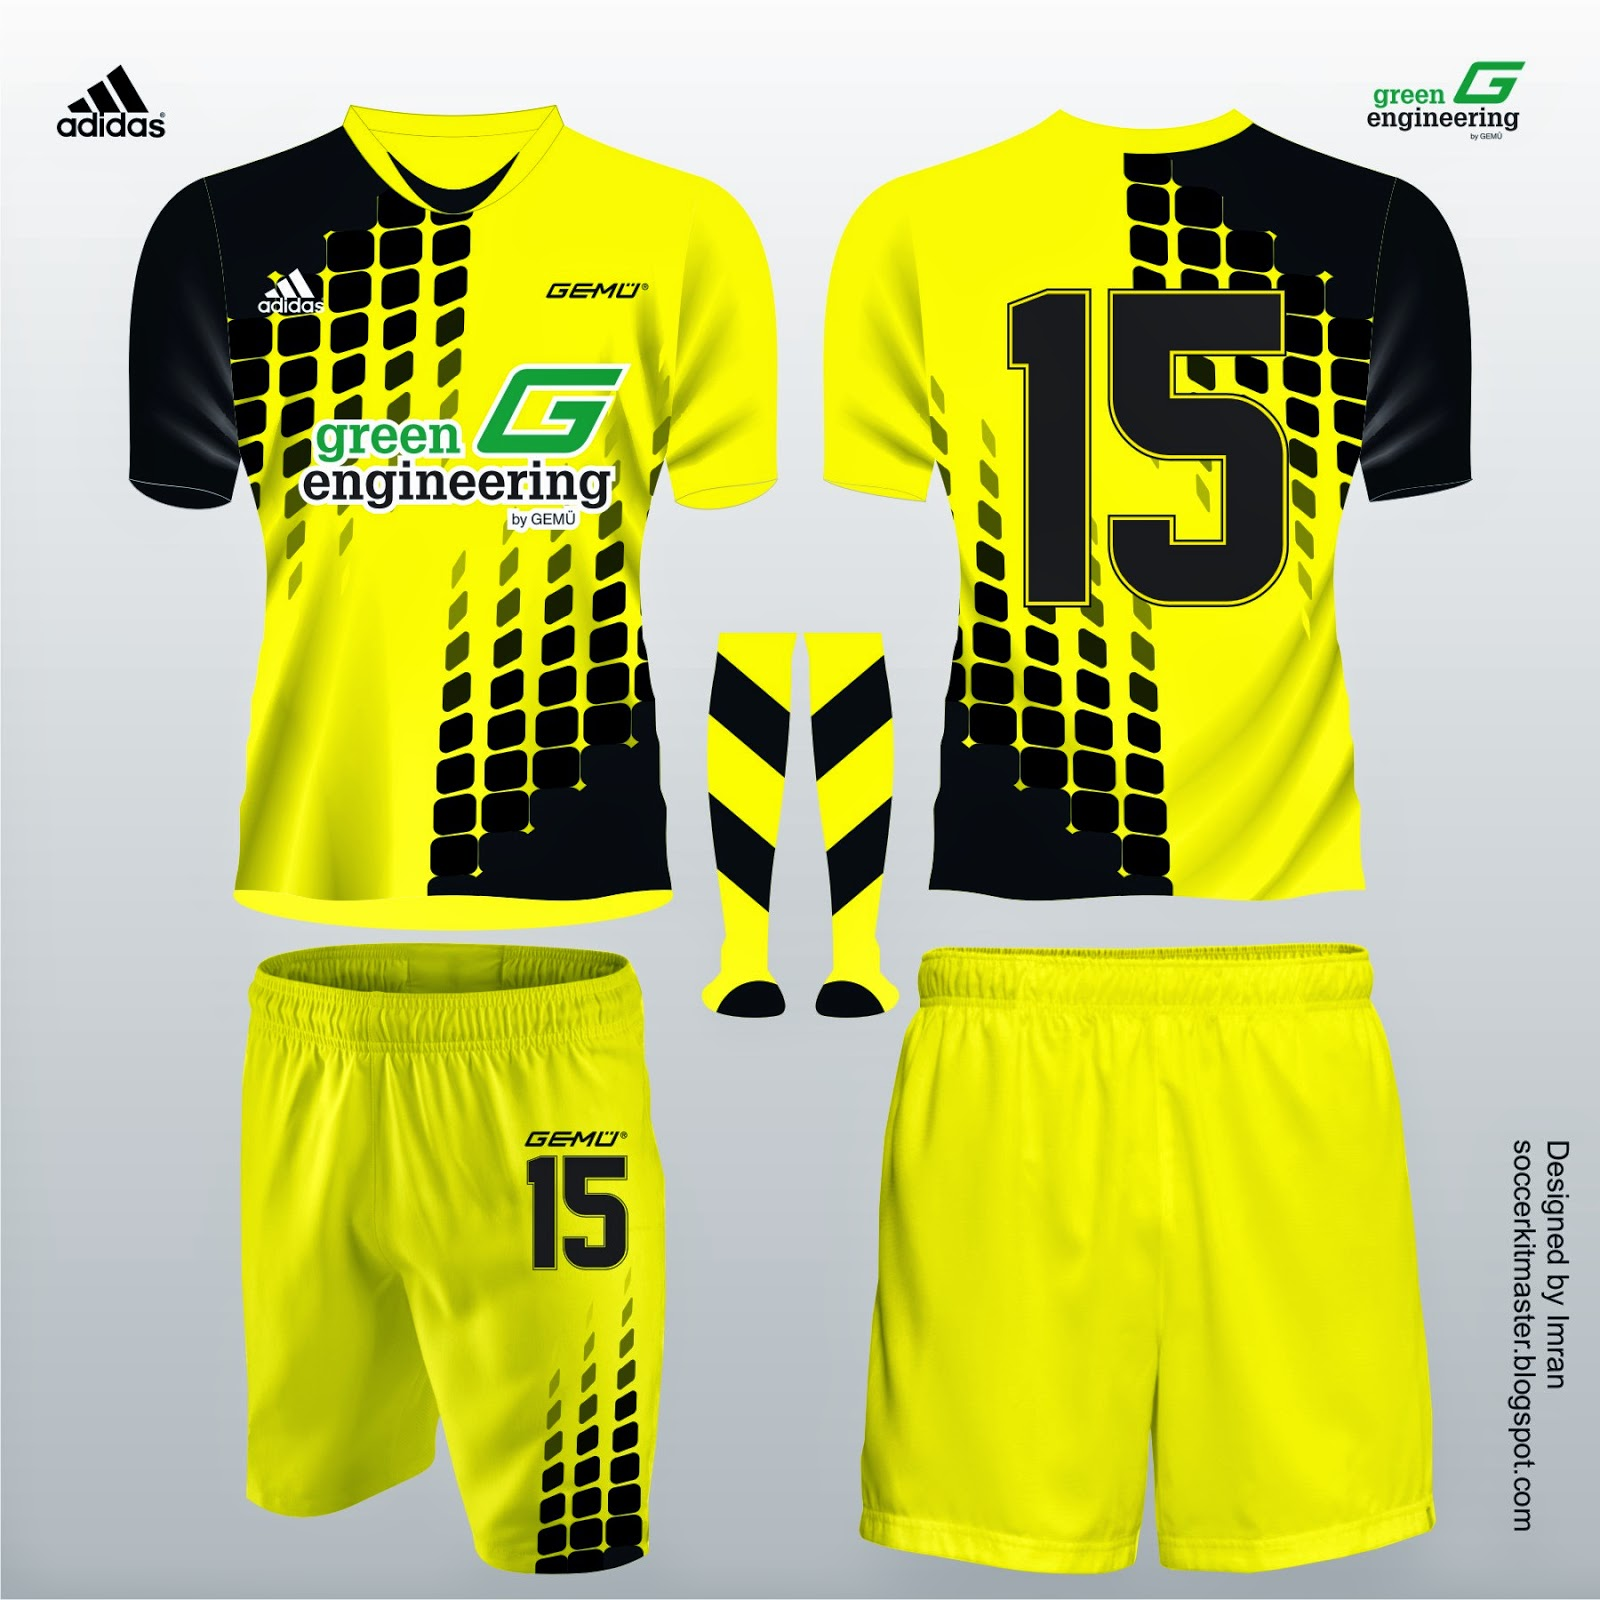 cc490c0e8c3 Posted by Football Kits Designs at 19 45 No comments